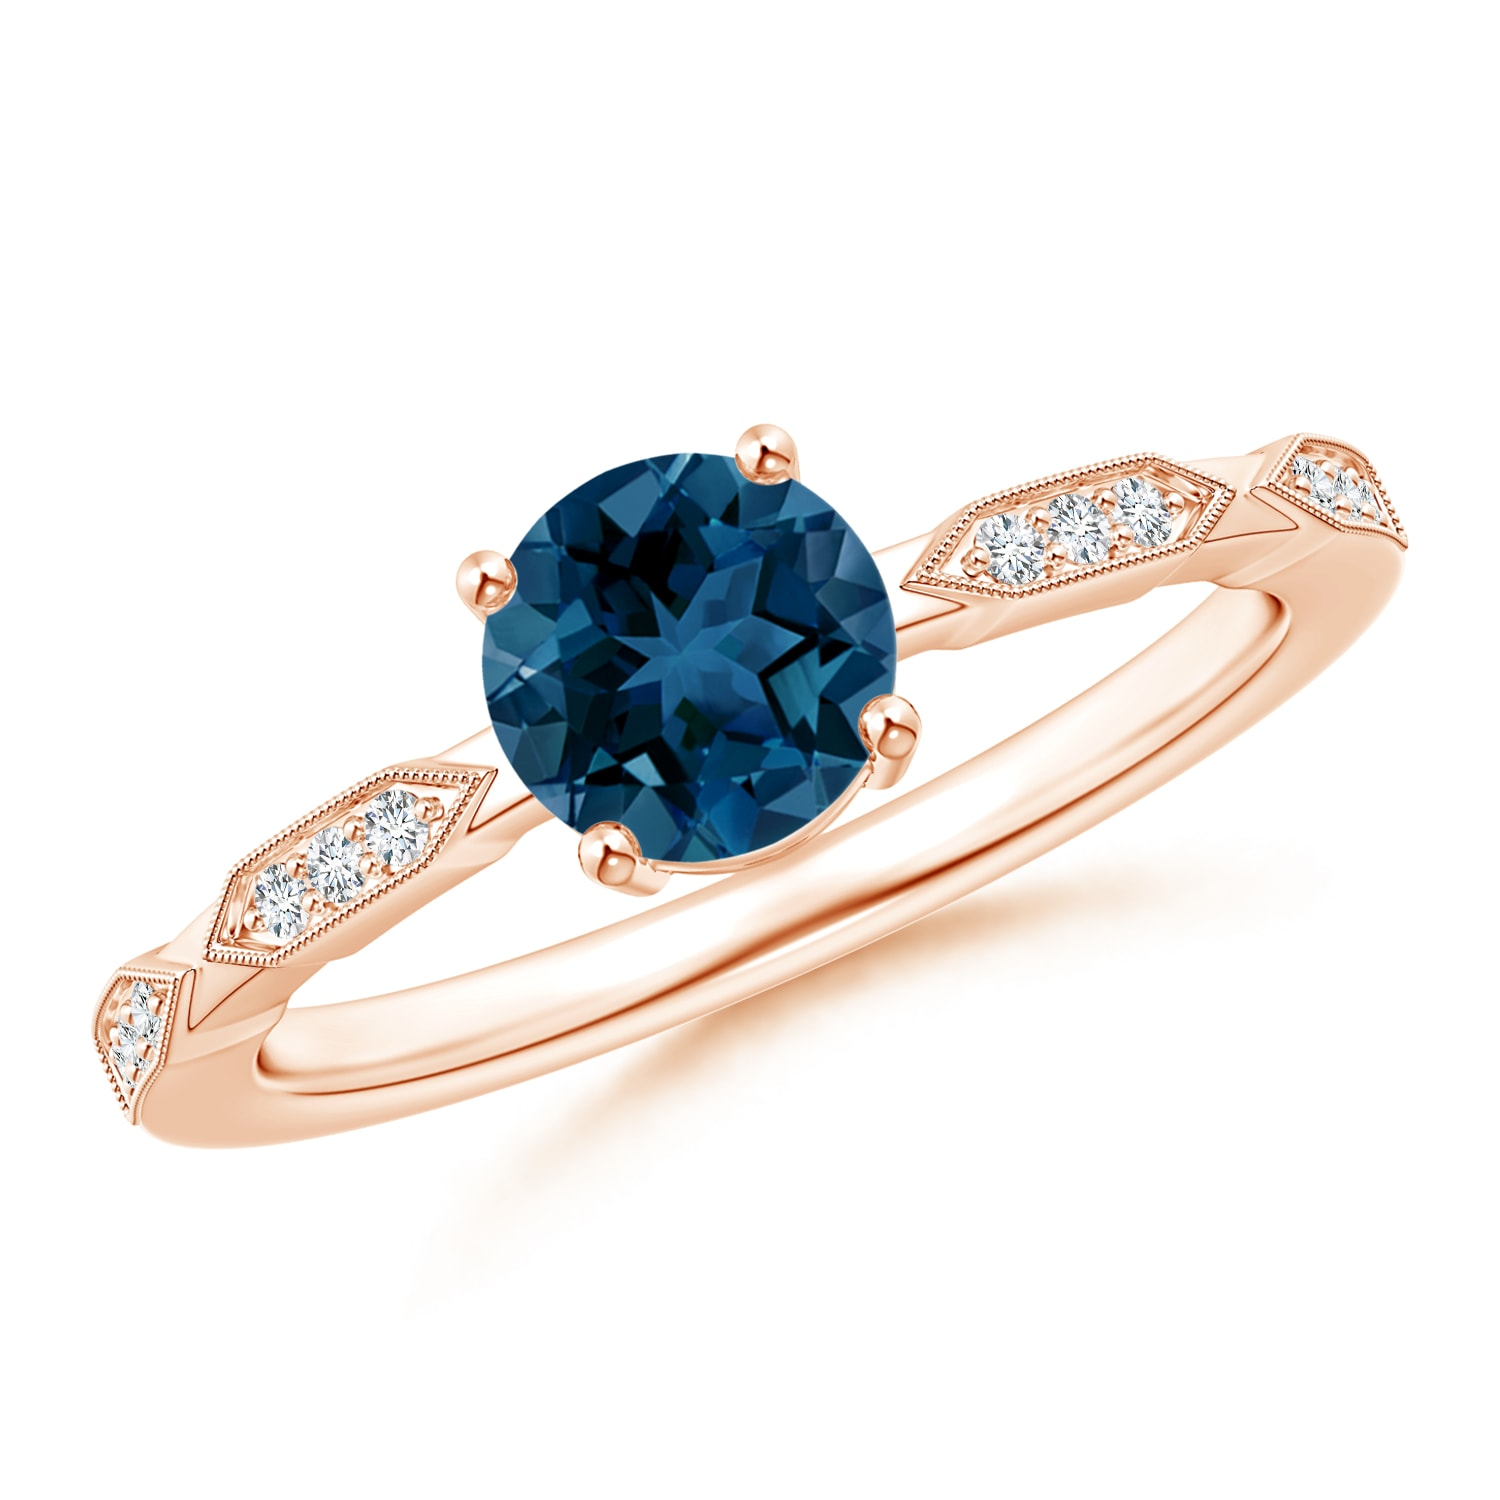 London Blue Topaz Solitaire Ring with Diamond Accents - Angara.com